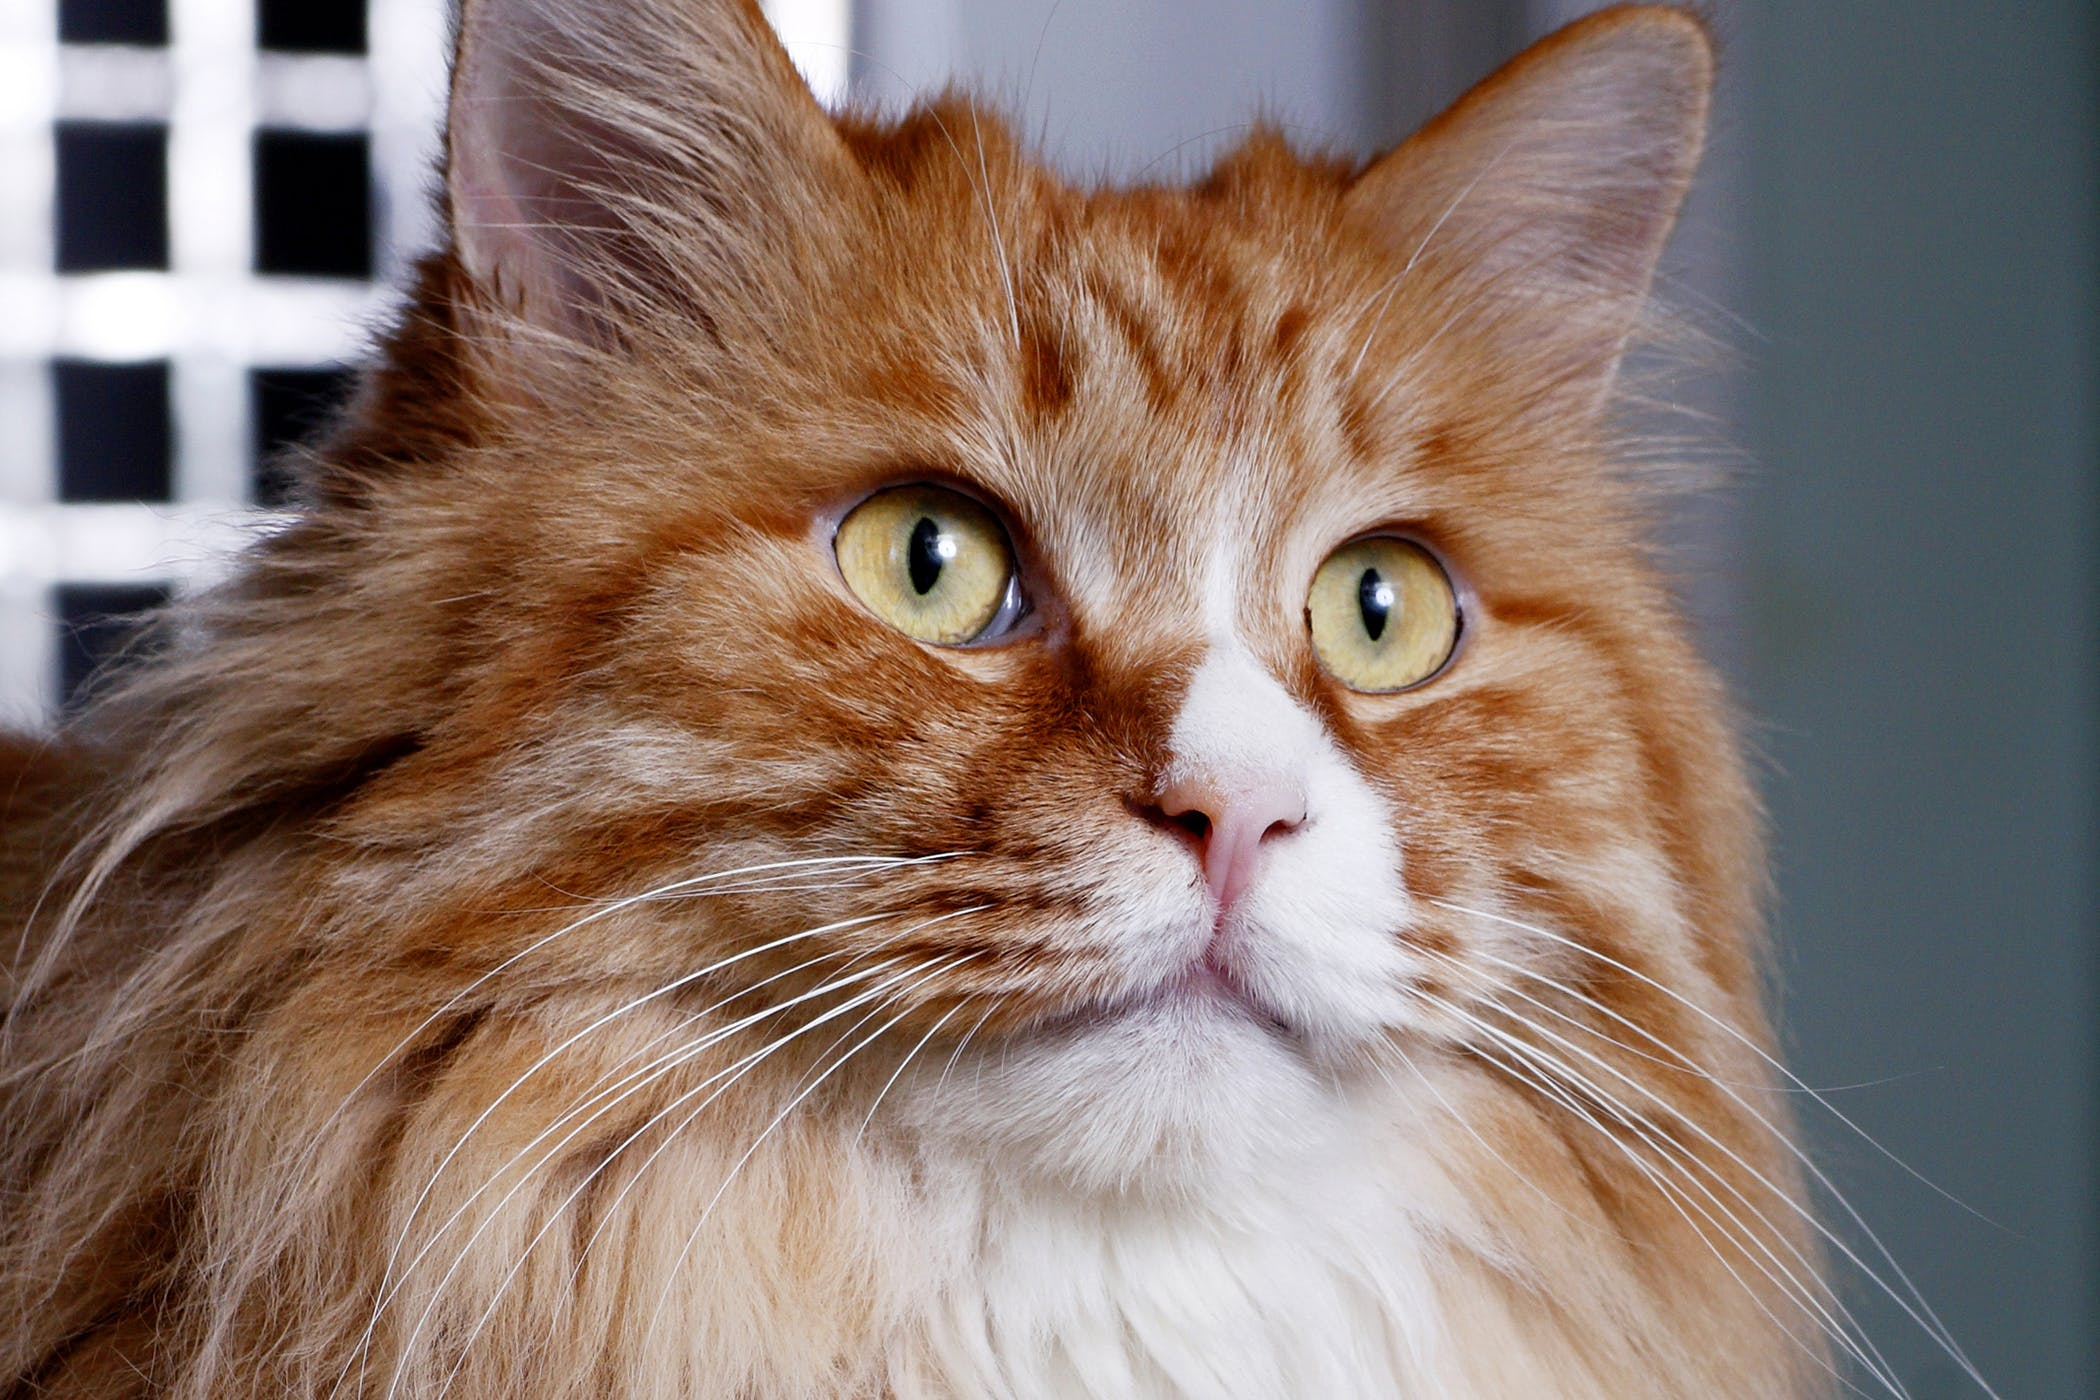 Angioedema Due to Allergies in Cats